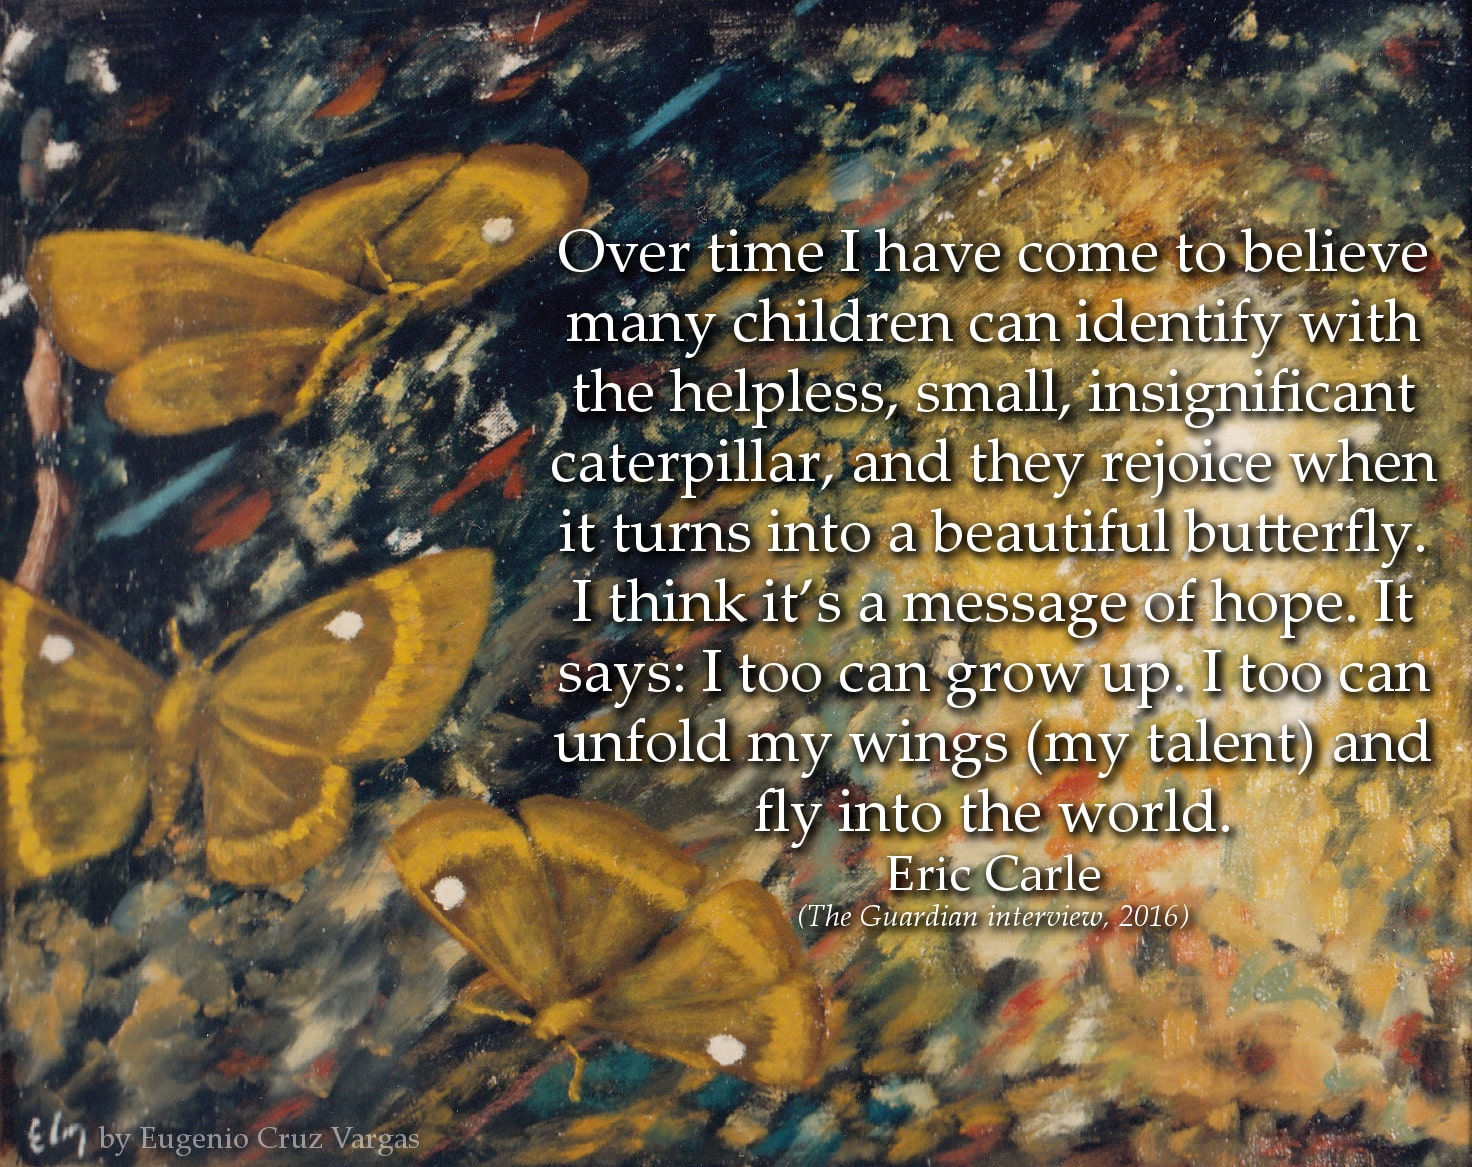 Eric Carle Quote: Over time I have come to believe many children can identify with the helpless, small, insignificant caterpillar...